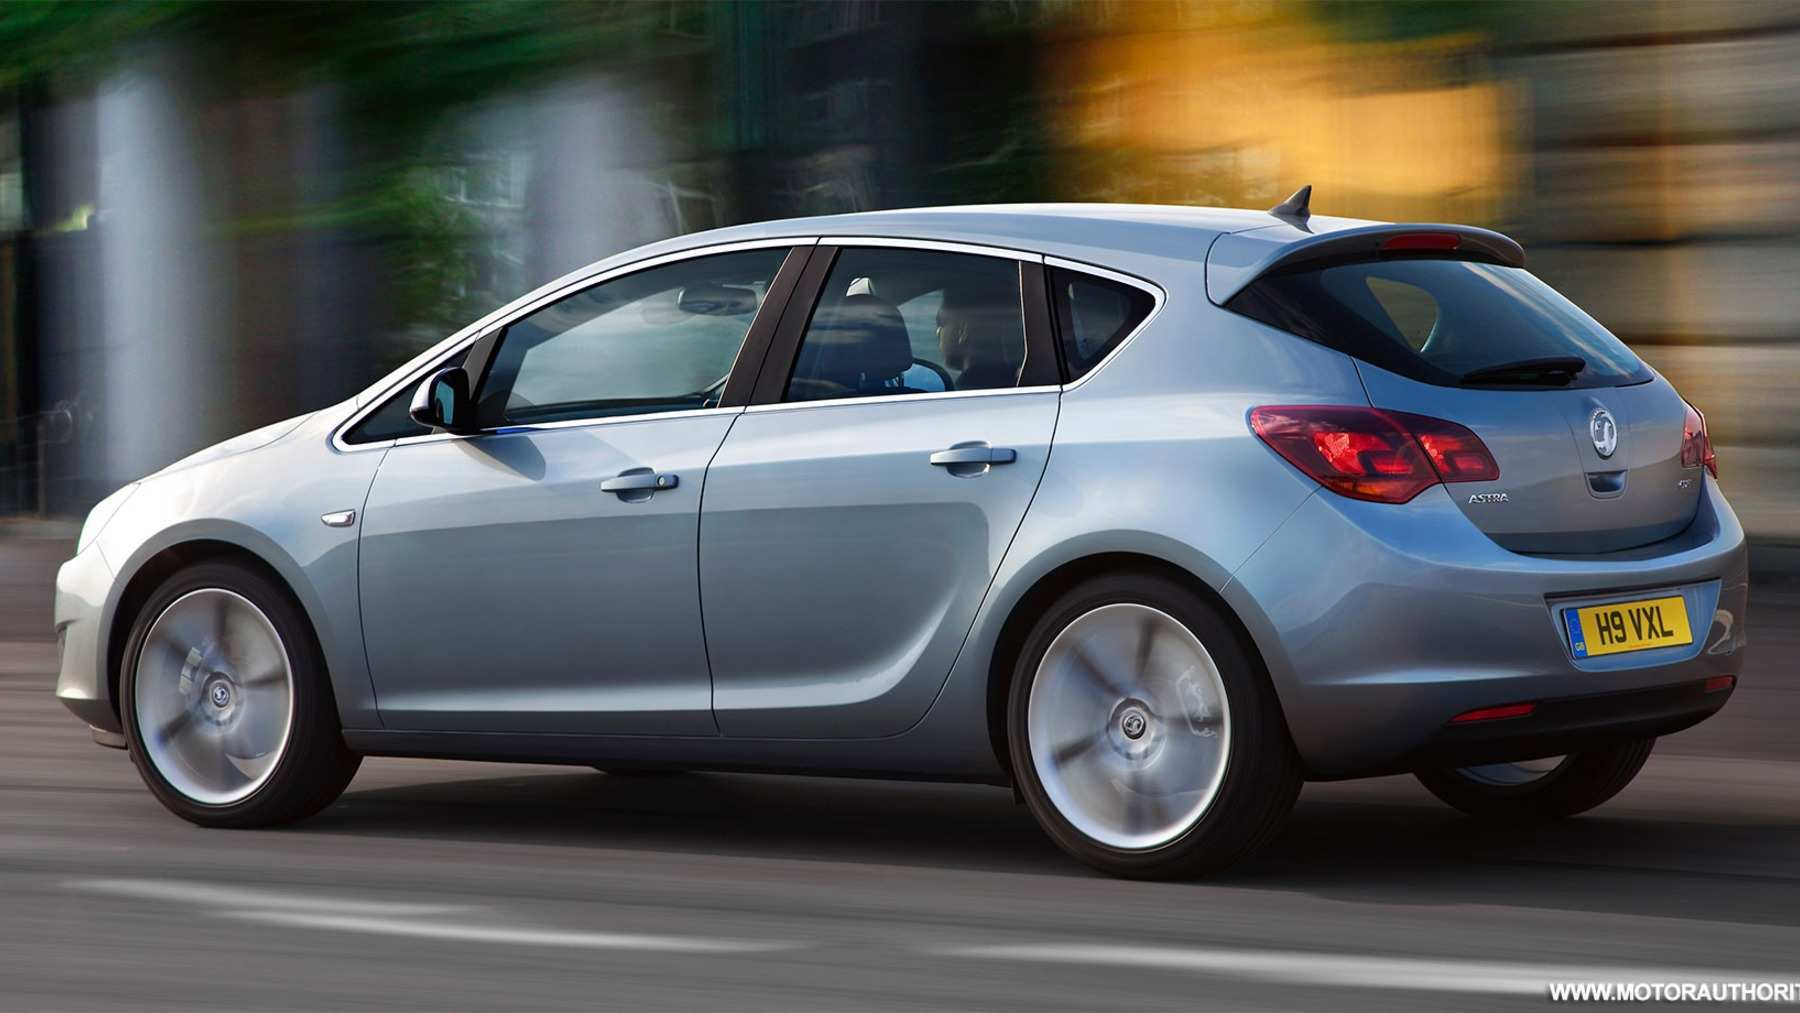 50 New Opel Astra 2020 Interior Spesification With Opel